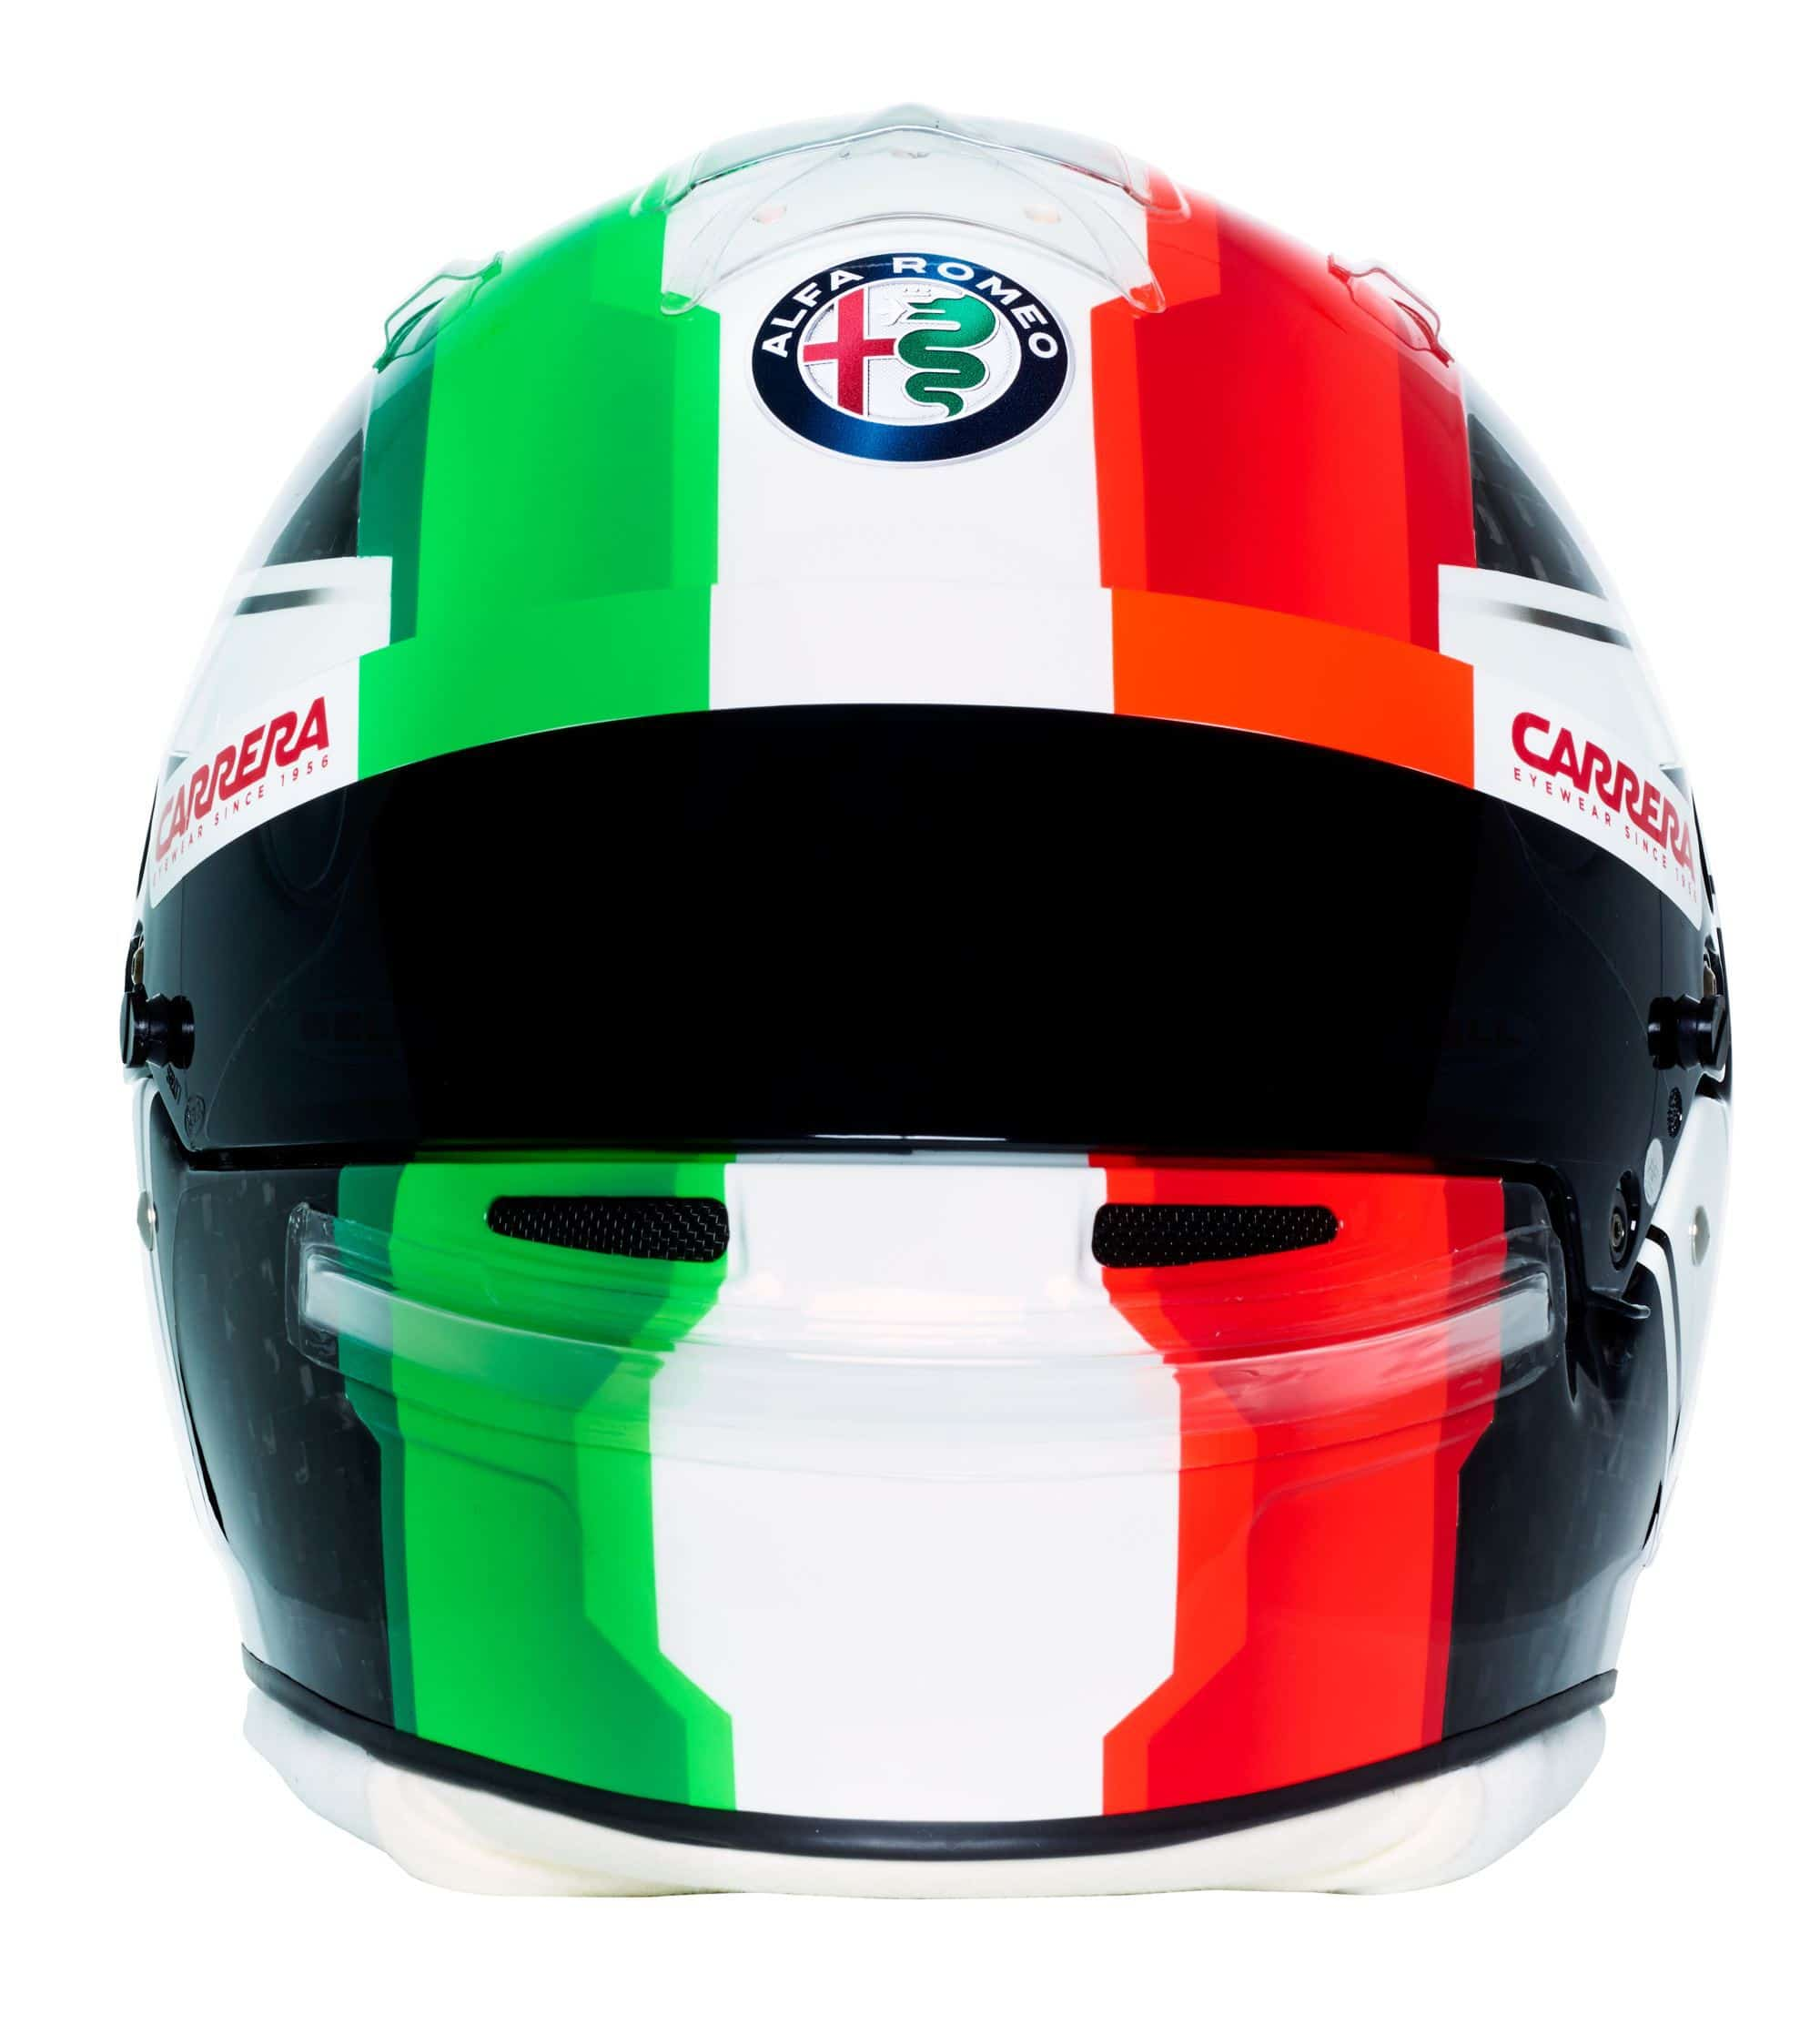 Antonio Giovinazzi 2019 F1 helmet Alfa Romeo Racing front Photo Alfa Romeo Edited by MAXF1net